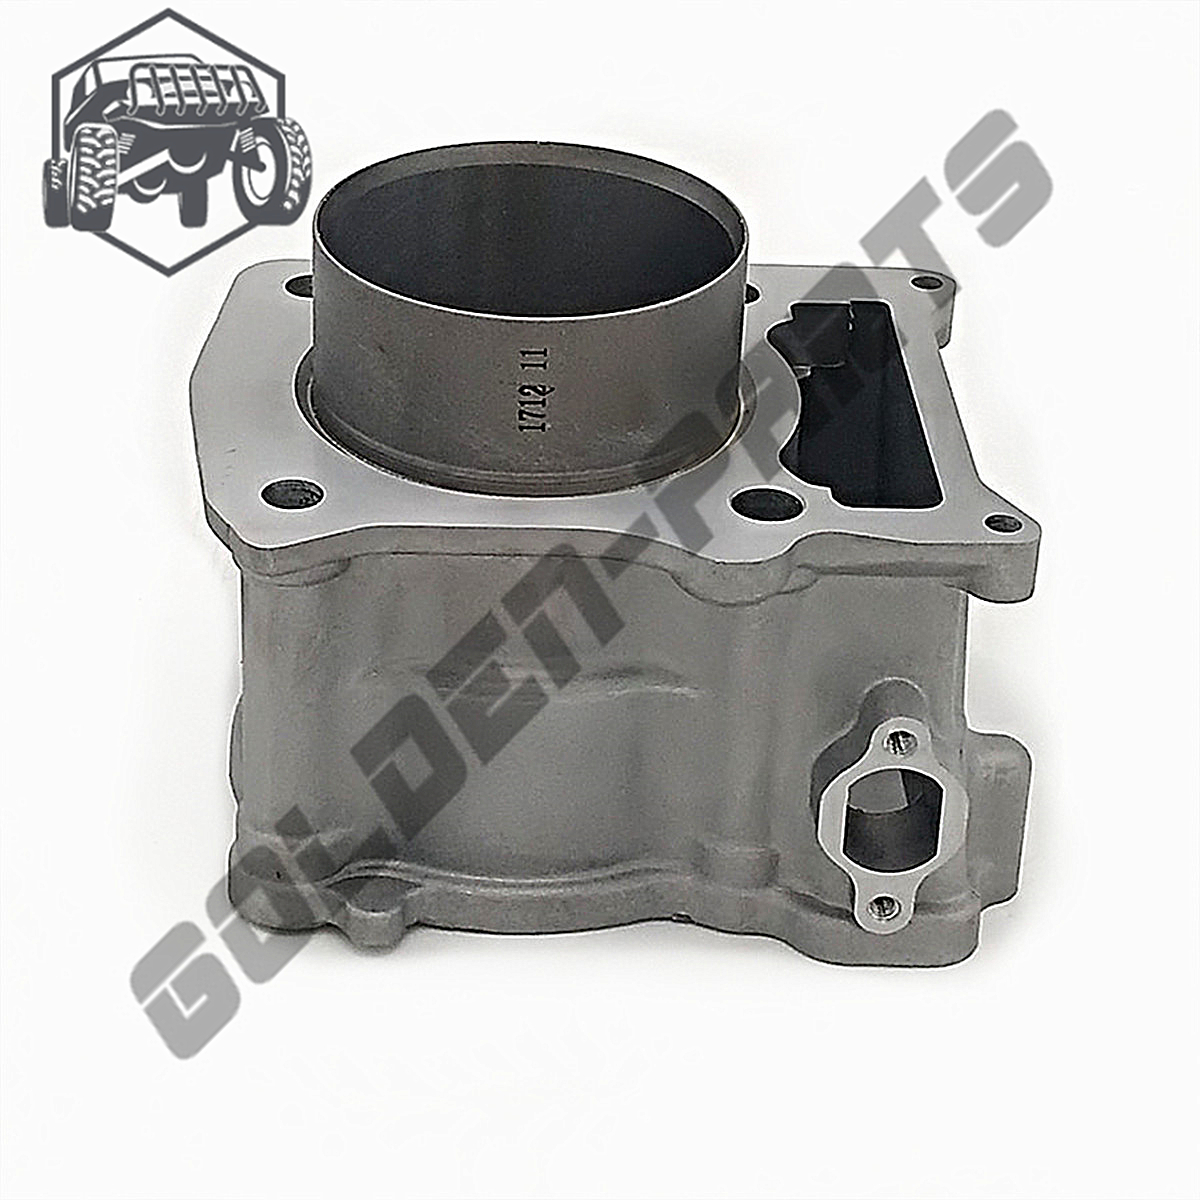 KUOQIAN Cylinder Body Assy FOR <font><b>HISUN</b></font> <font><b>500</b></font> <font><b>UTV</b></font> SPARE PART 1211A-004000-0000 OEM Part Steel ATV Accessories image